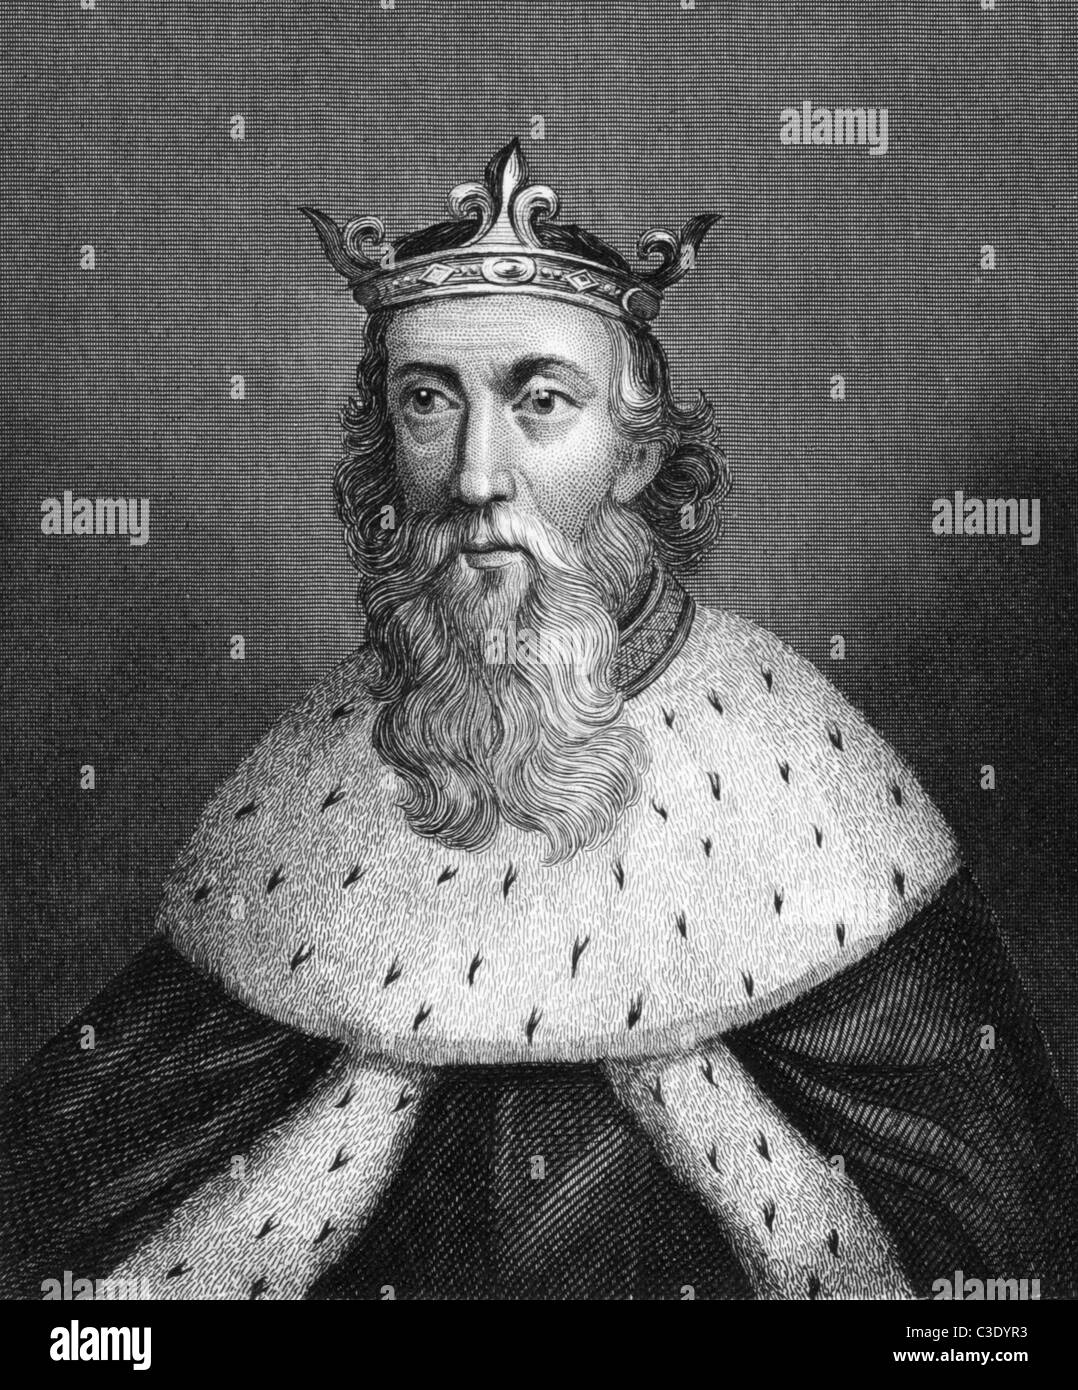 Henry I of England (1068-1135) on engraving from 1830. King of England during 1106-1135. Published in London by - Stock Image